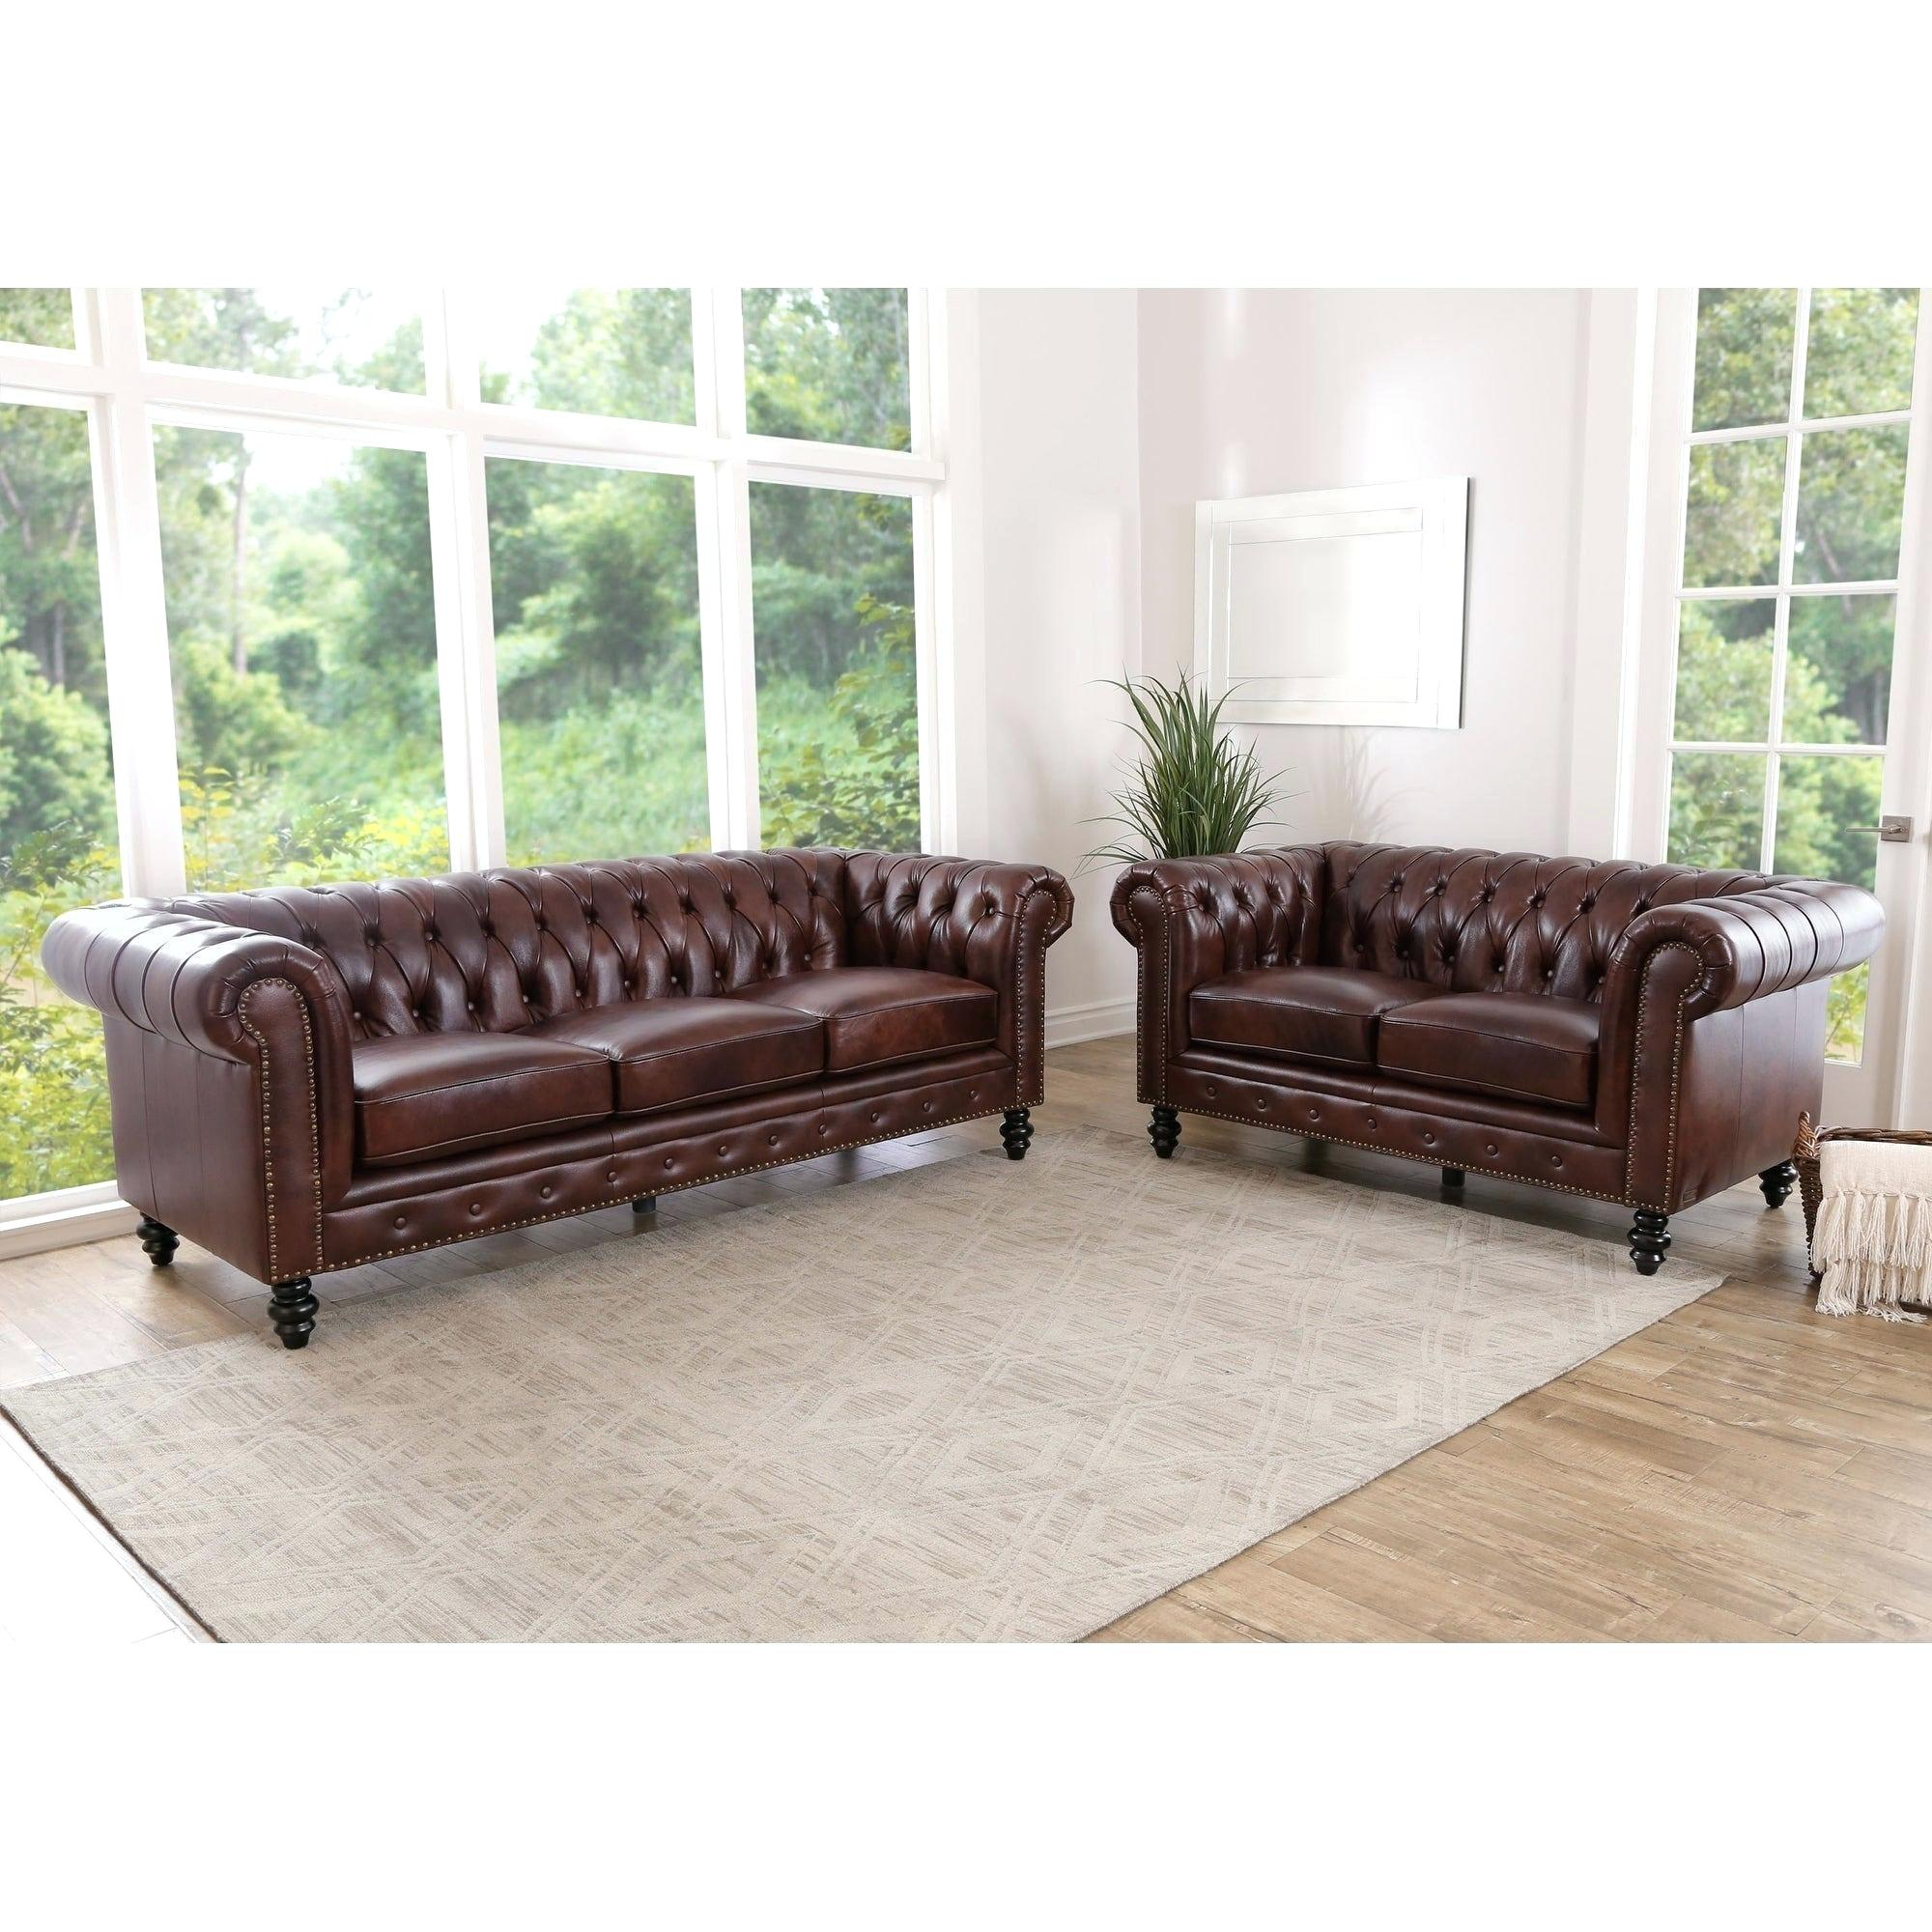 Awesome Furnitures In Living Room Furniture Sets Cheap Uk with Cheap Living Room Sets Online